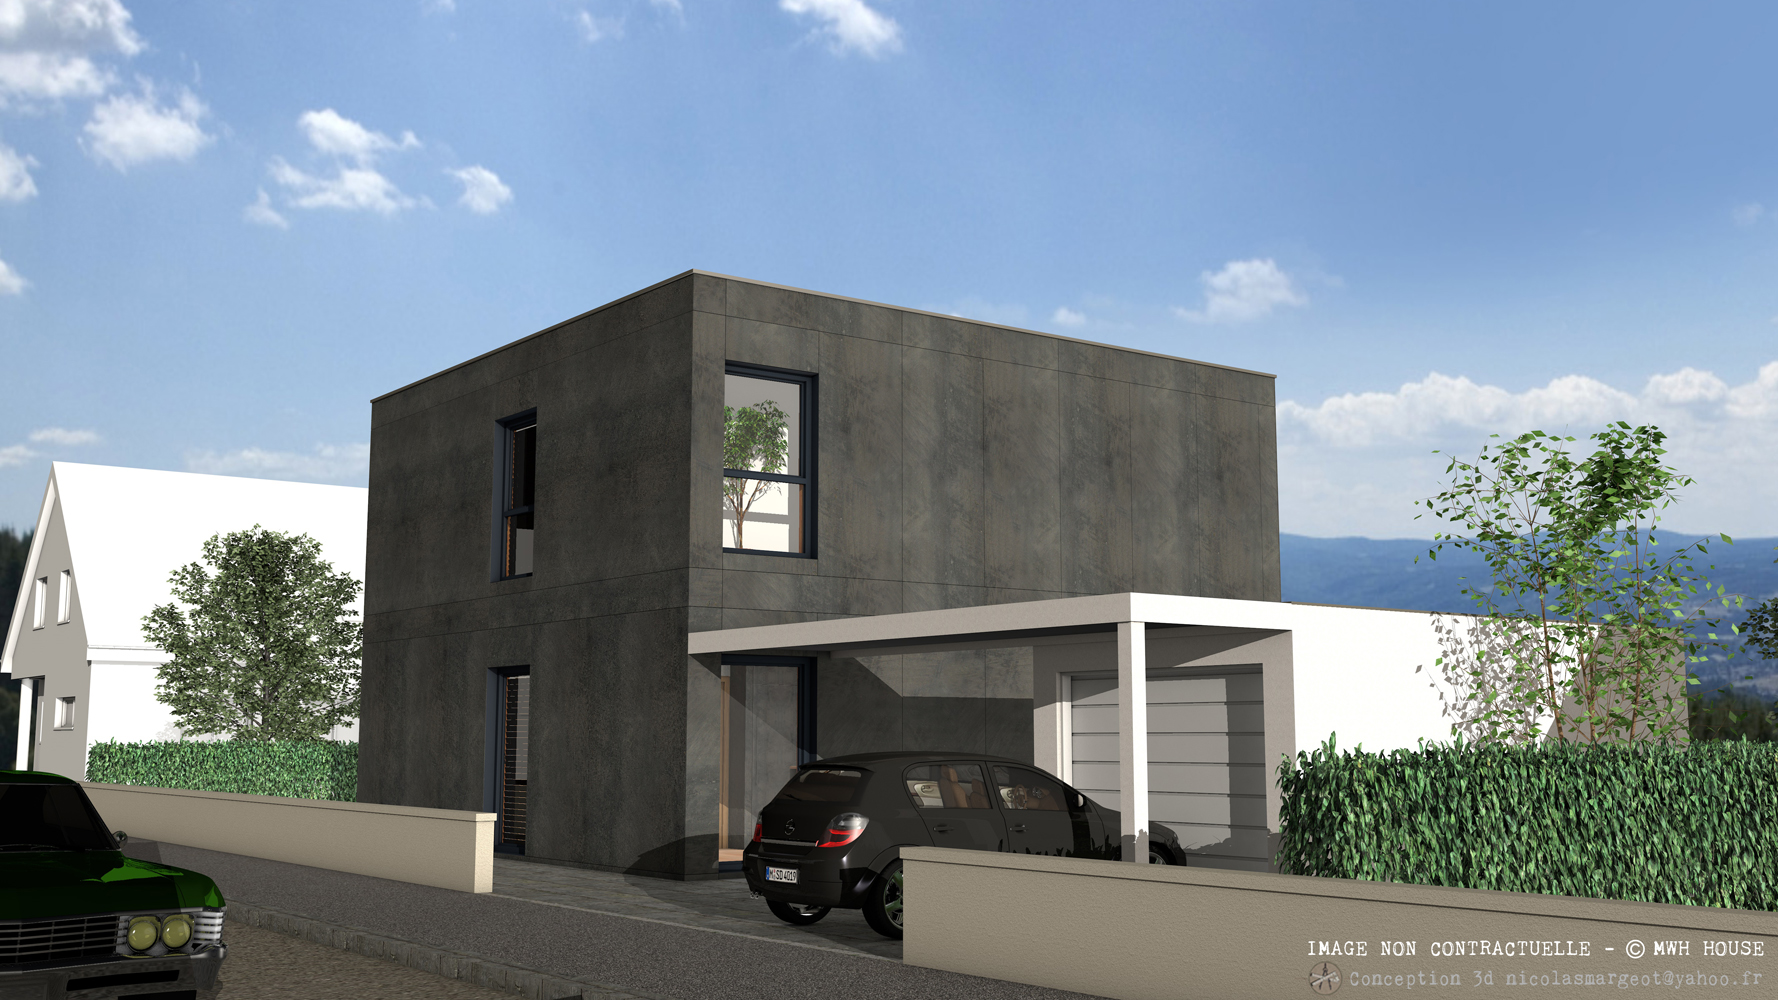 Crepi Exterieur Gris Anthracite notre collection | mwh house